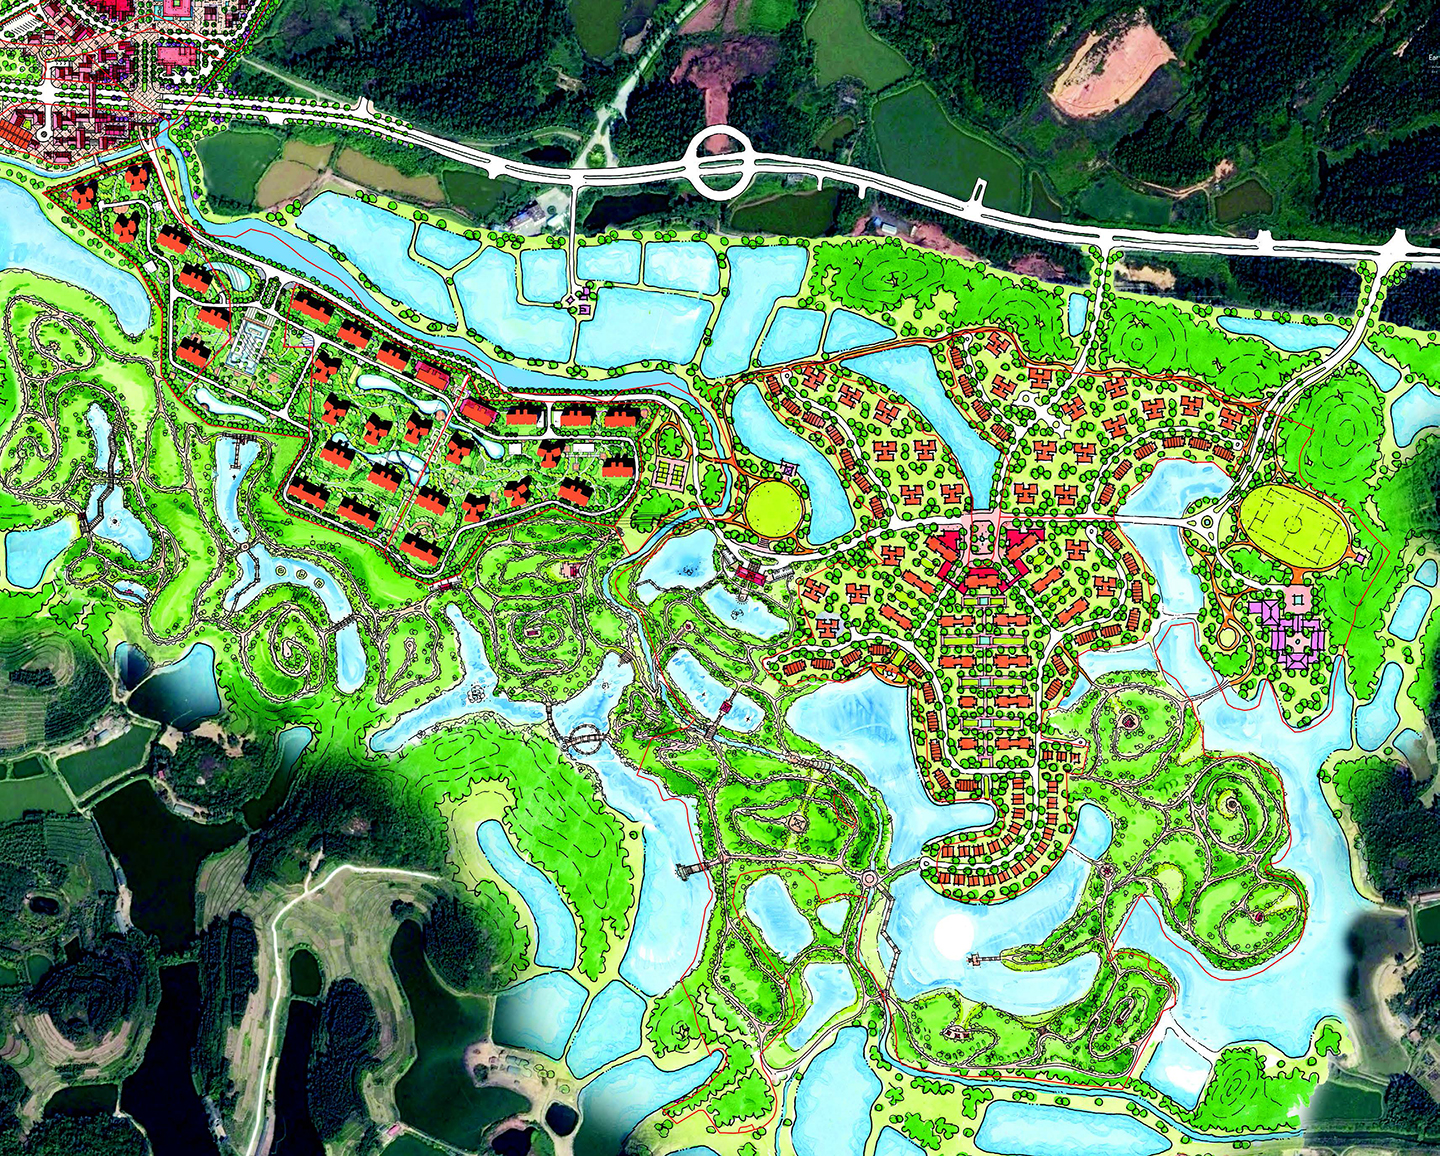 Greenland Zhaoqing_eco park district_EKISTICS